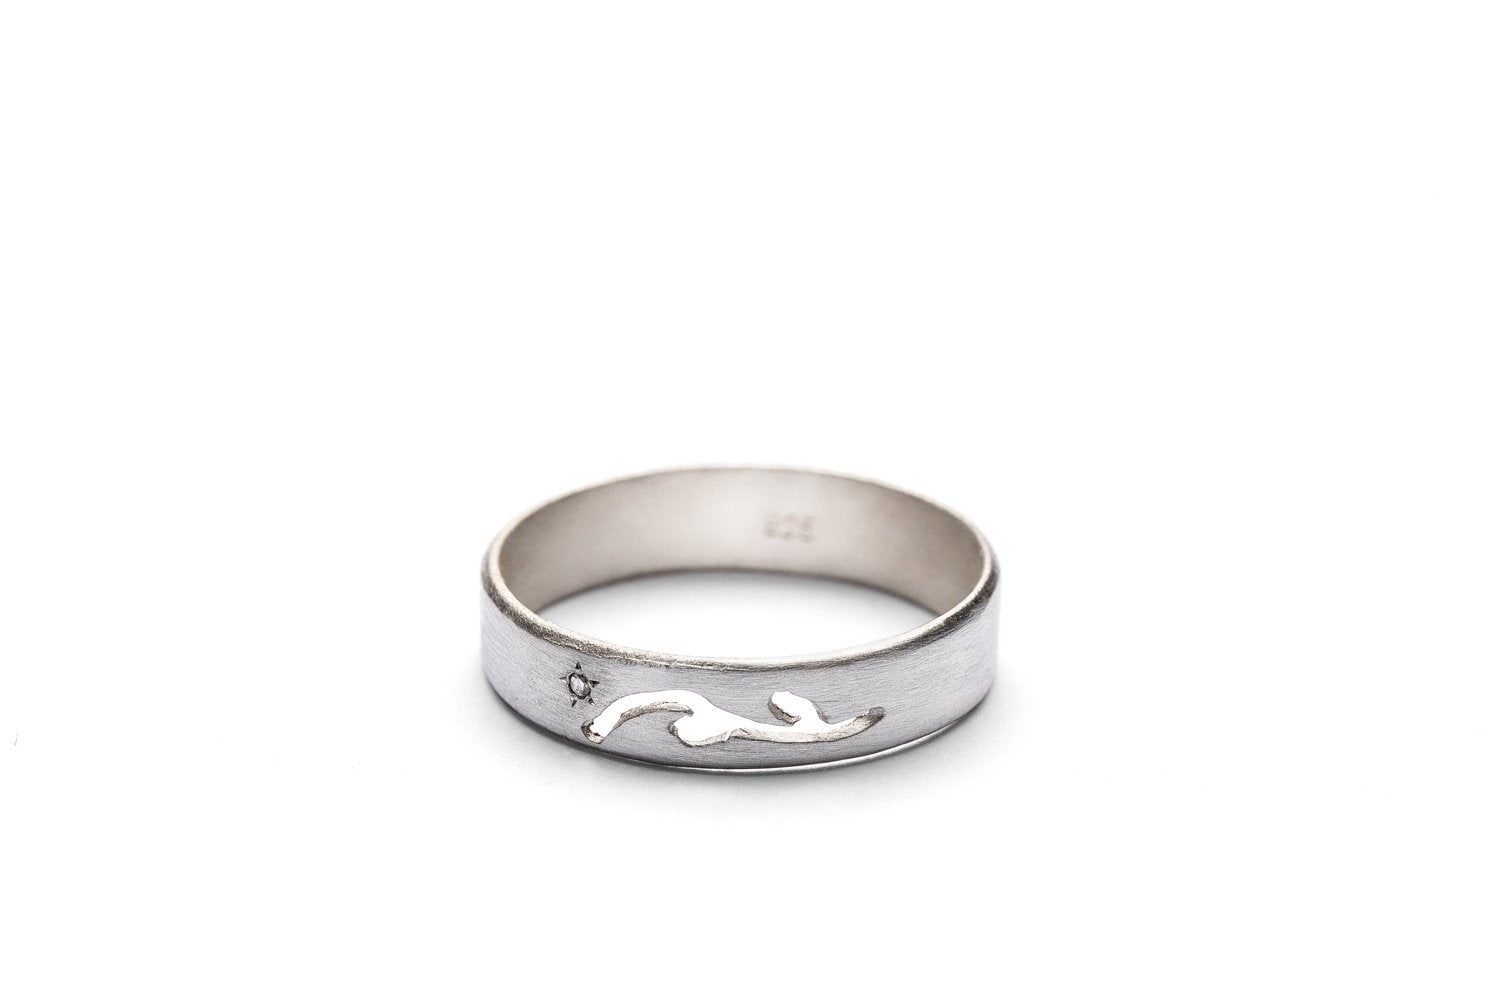 Simple And Unique Tiny Diamond Band | Beautiful 925 Sterling Silver Wedding  Ring For Women | Nature Inspired Silver Promise Band With Regard To Most Up To Date Simple Sparkling Band Rings (Gallery 8 of 25)